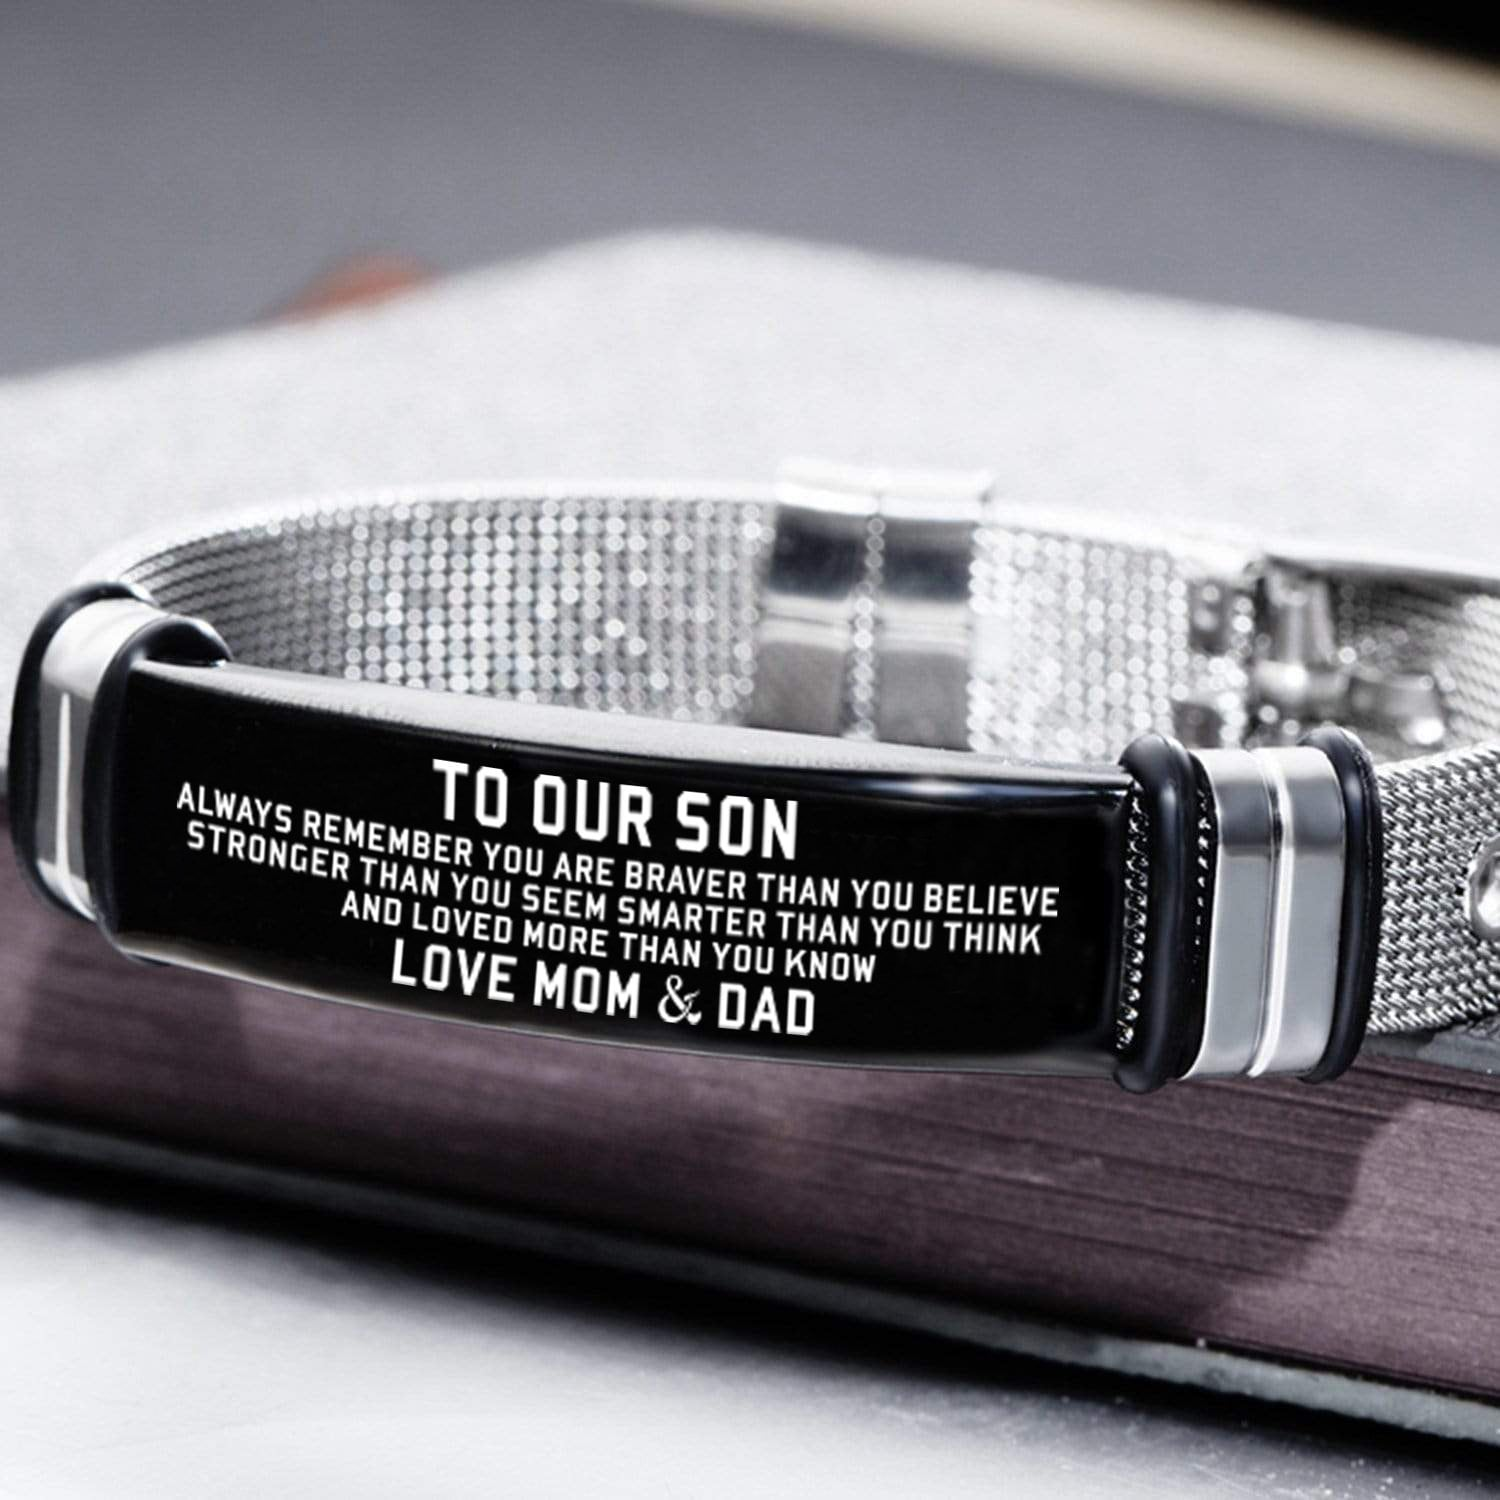 To My Son Bracelet Wristband Gift From Mom Dad Jewelry Love Son For 2021 Christmas Wedding College Graduation Birthday Xmas